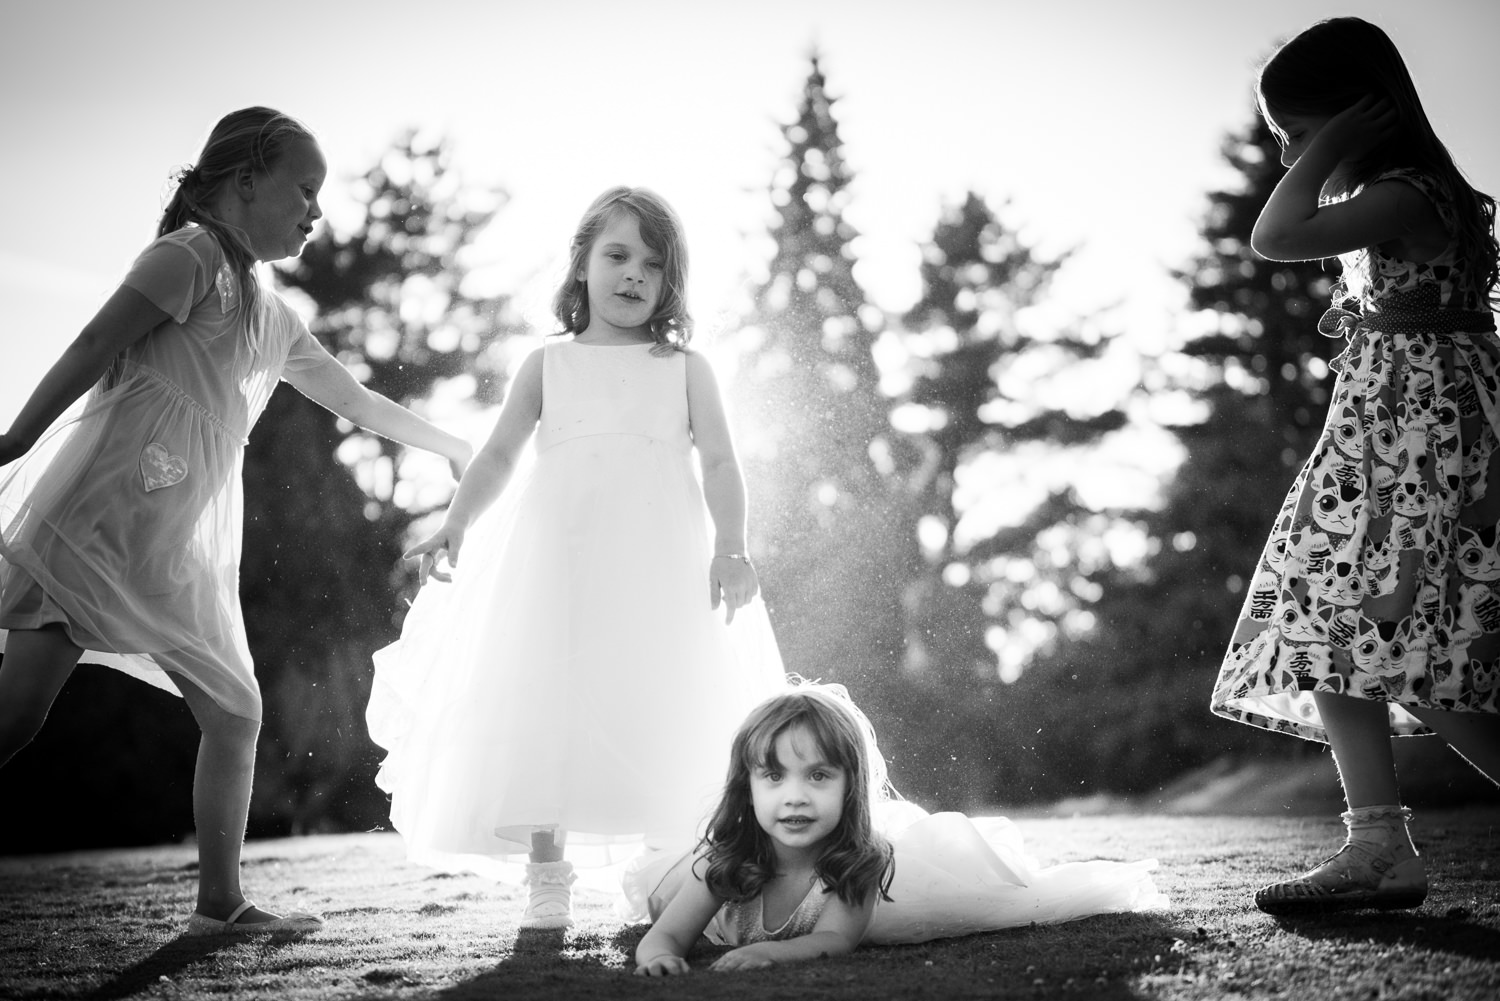 If you follow them closely enough, children can provide some fabulous photos at Ashdown Park Hotel